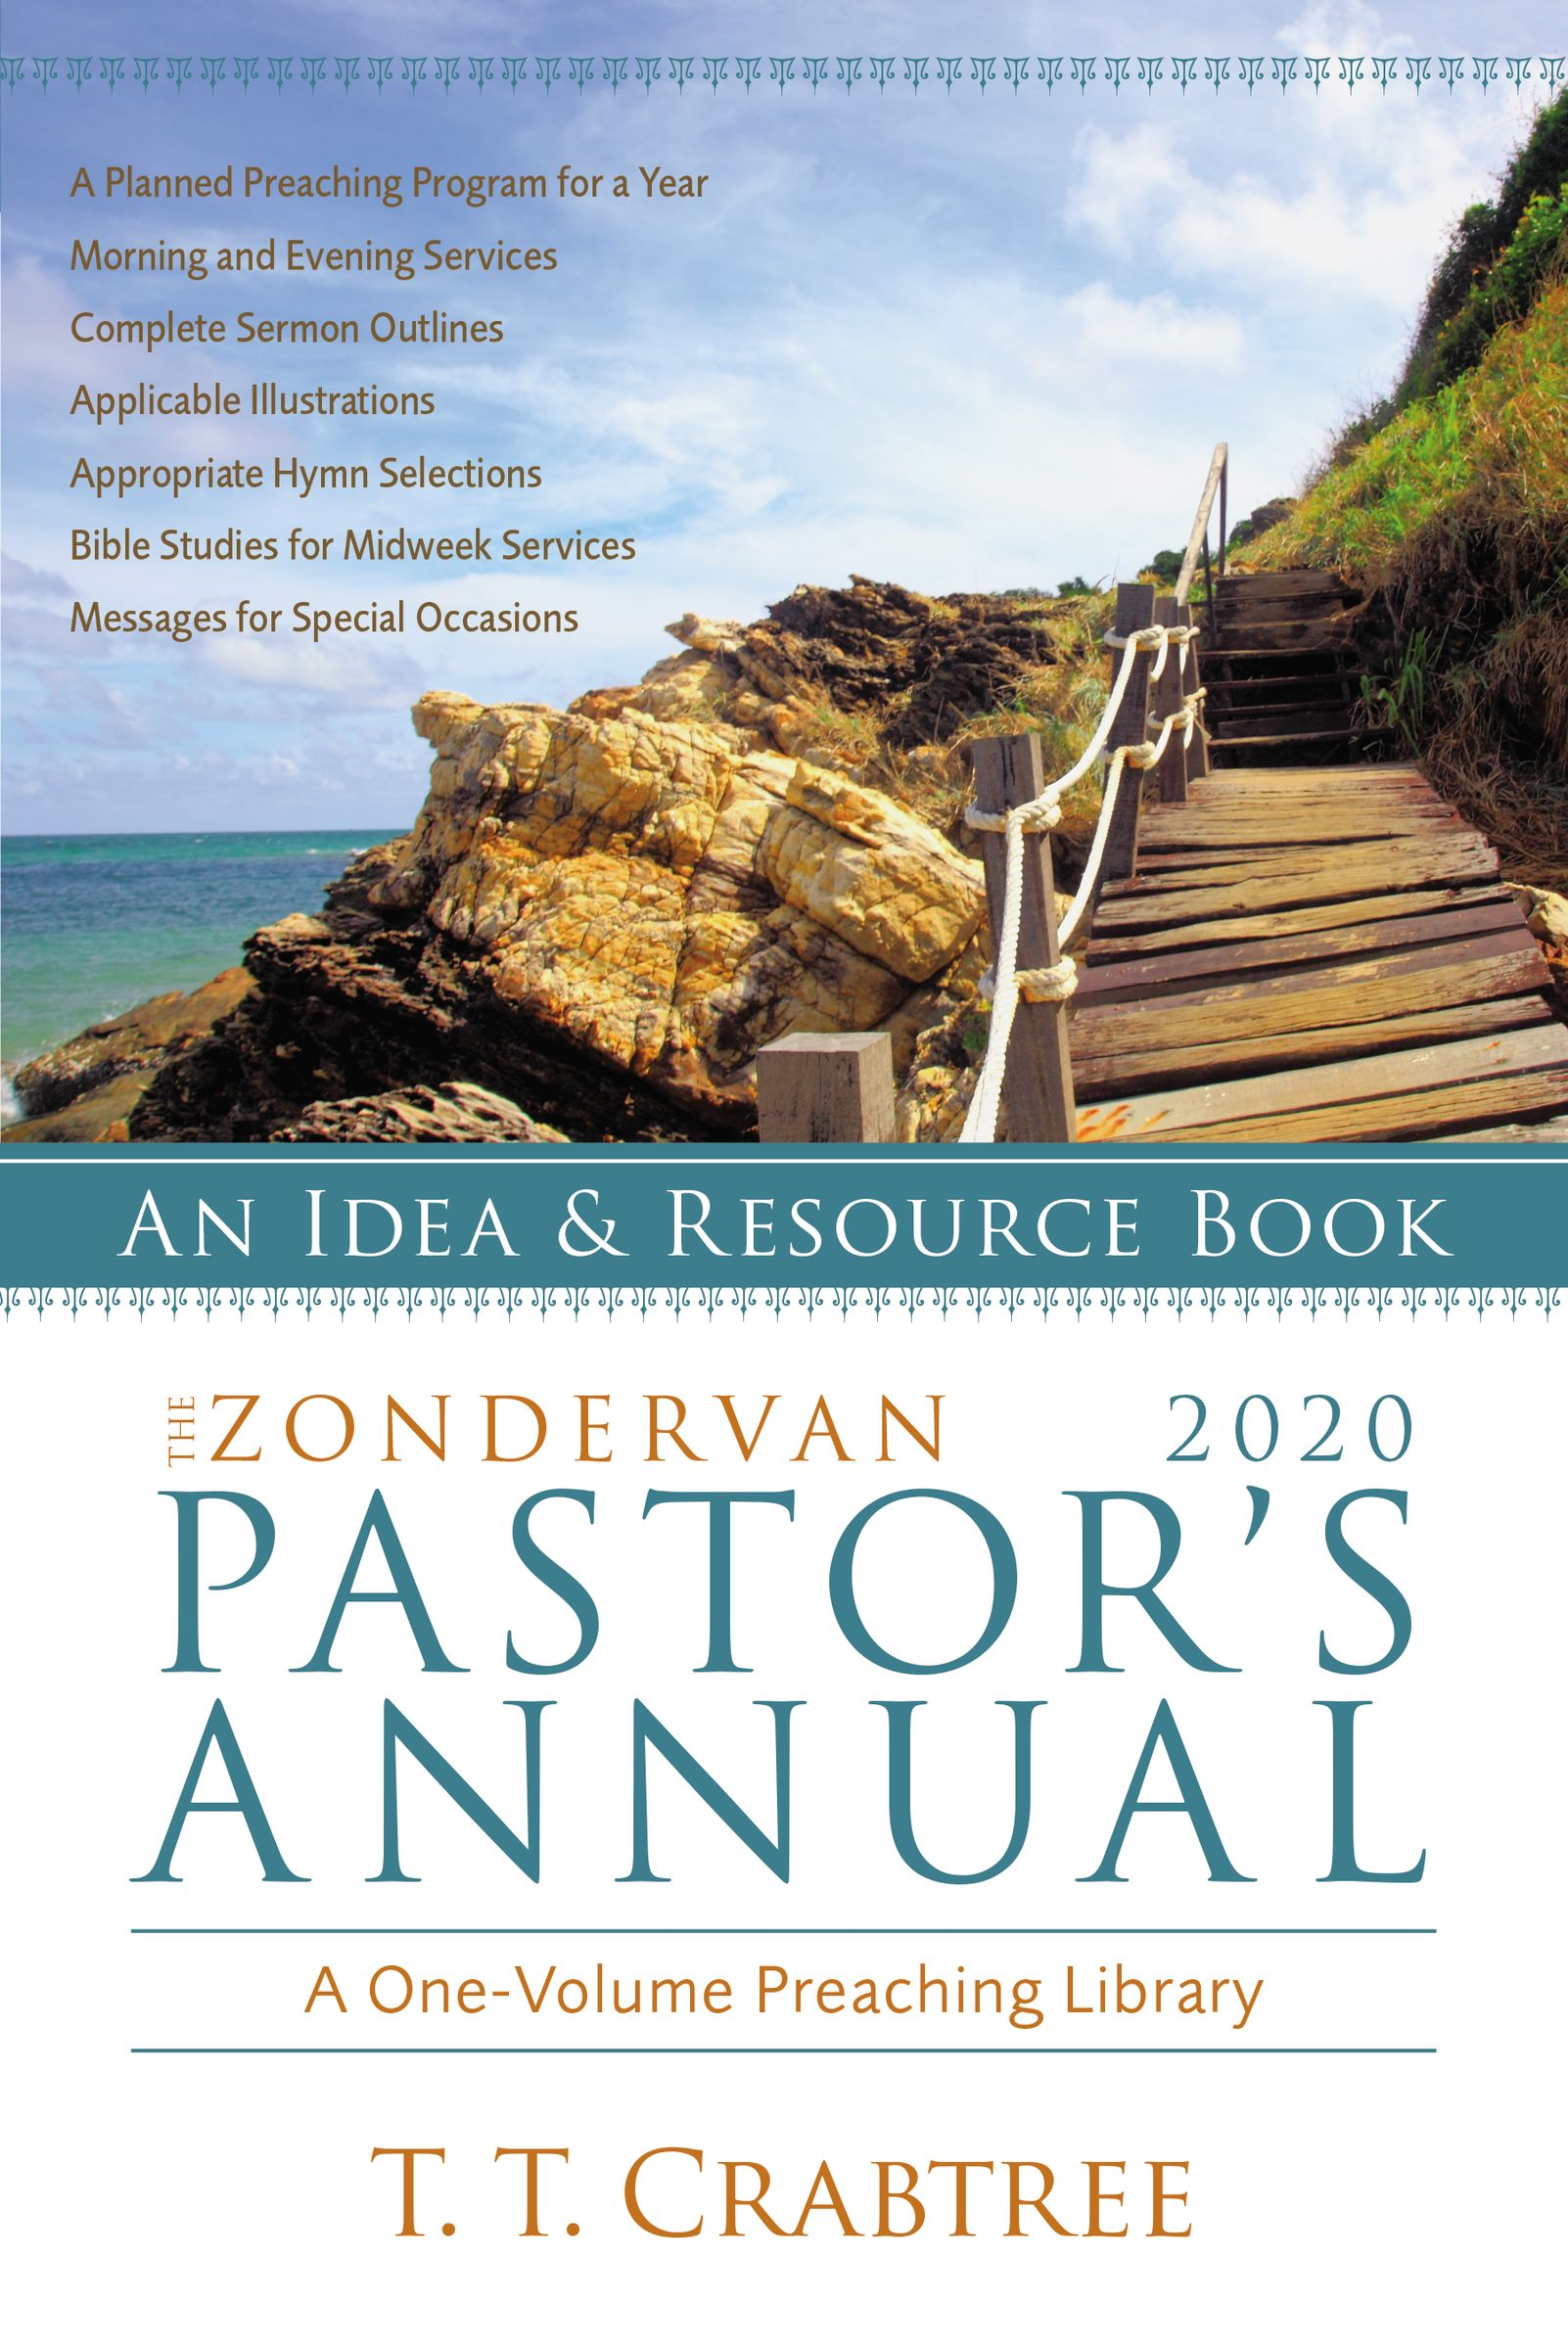 The Zondervan 2020 Pastor's Annual: An Idea and Resource